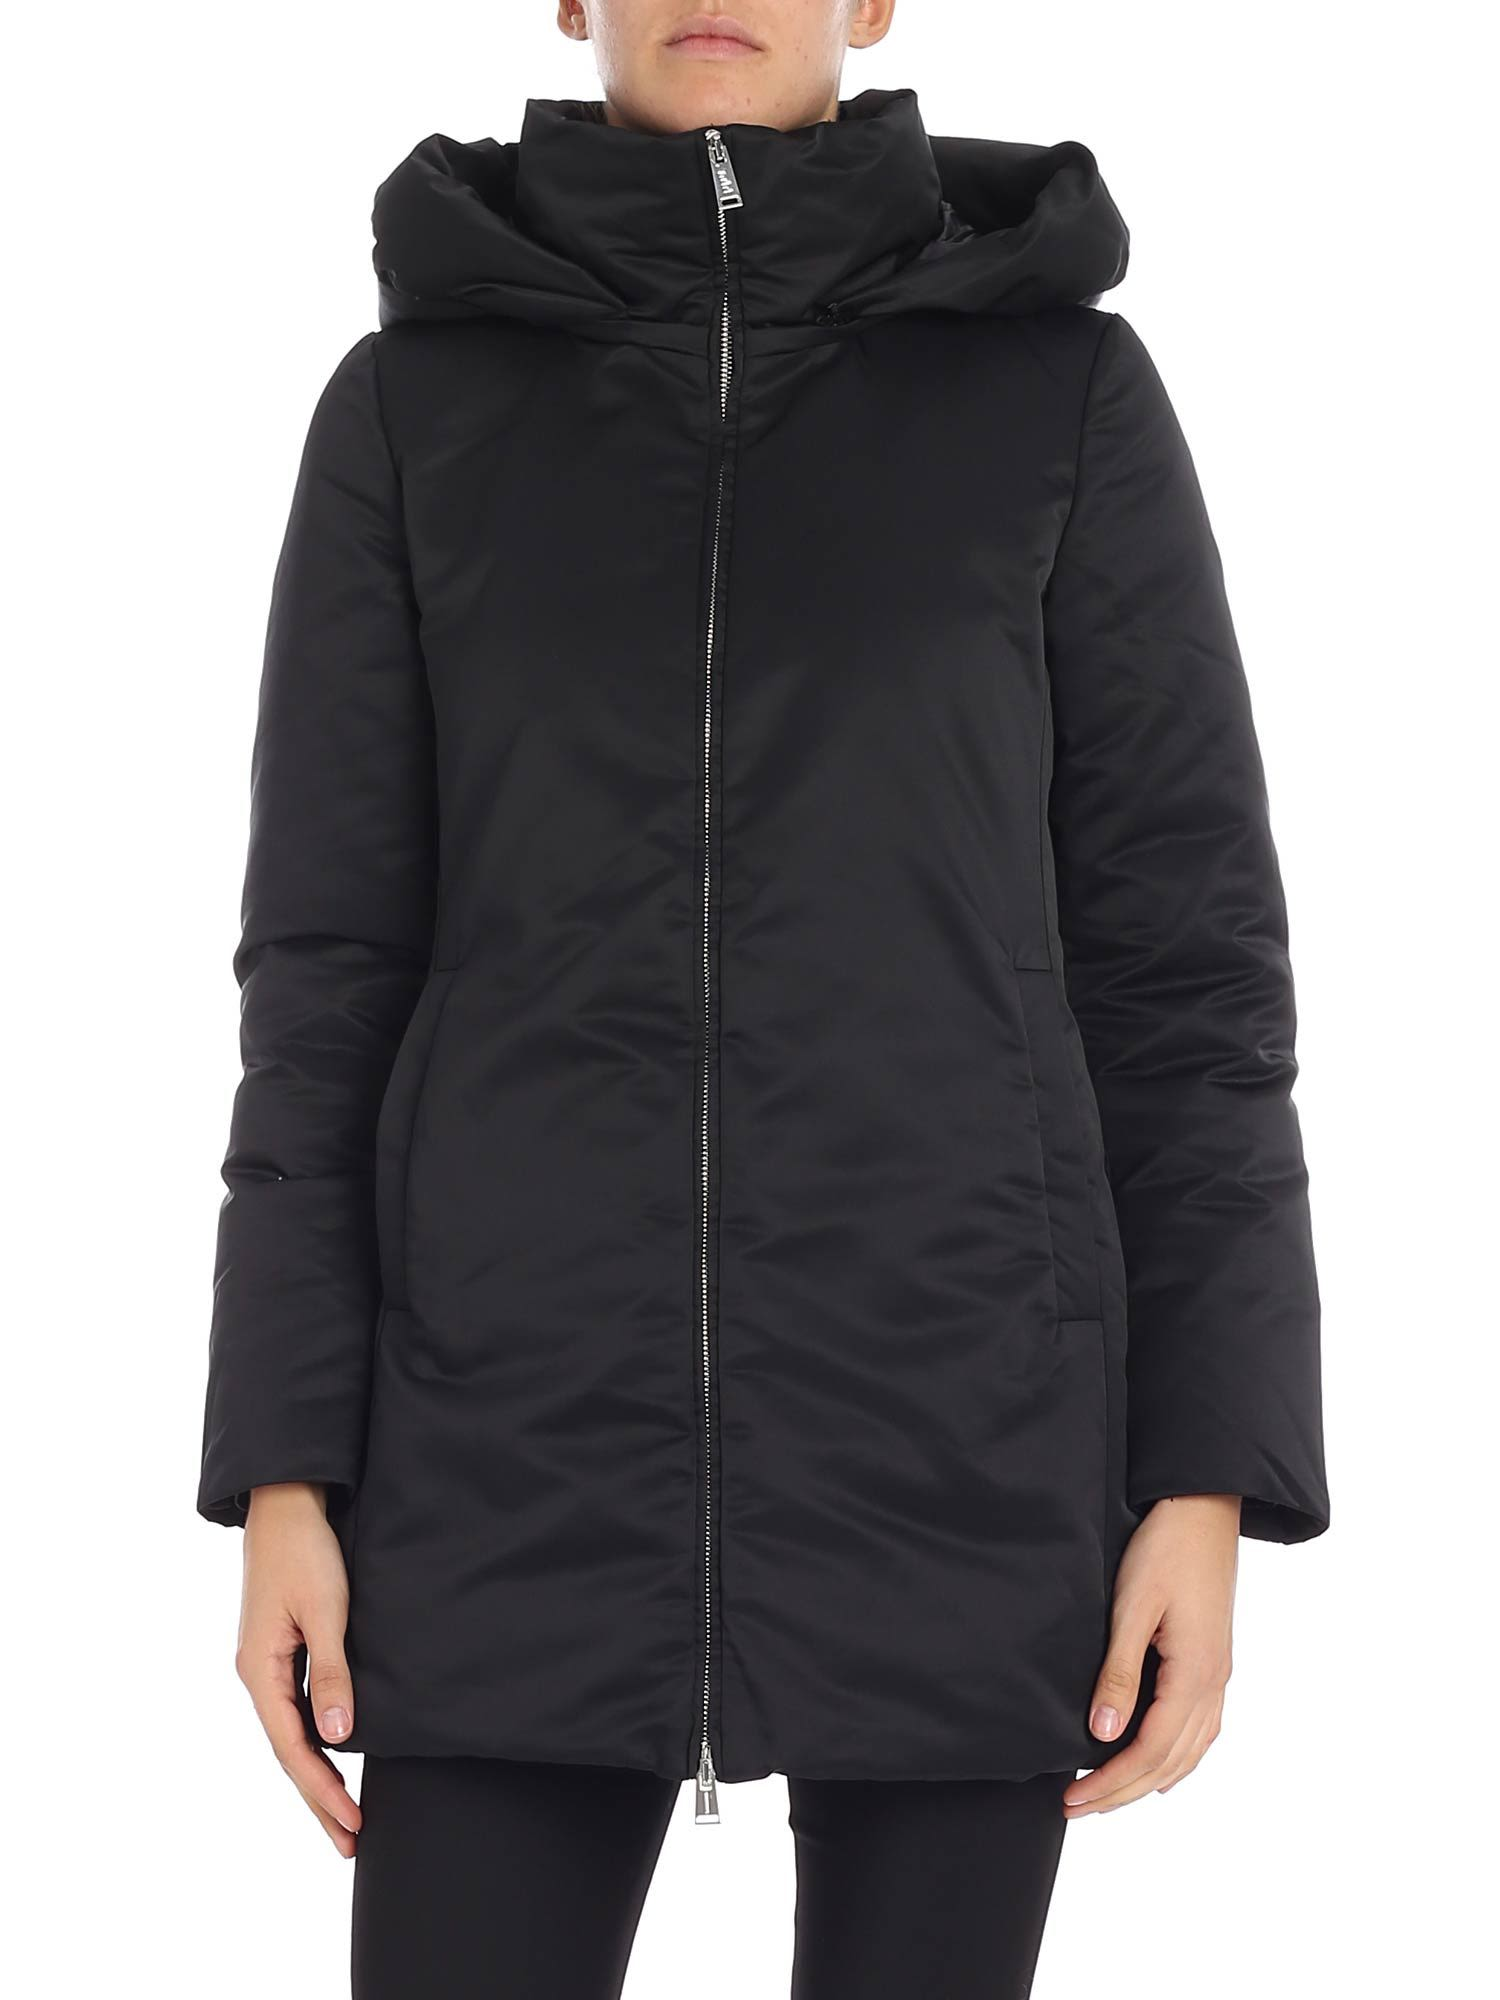 ADD Add Detachable Hood Jacket in Black